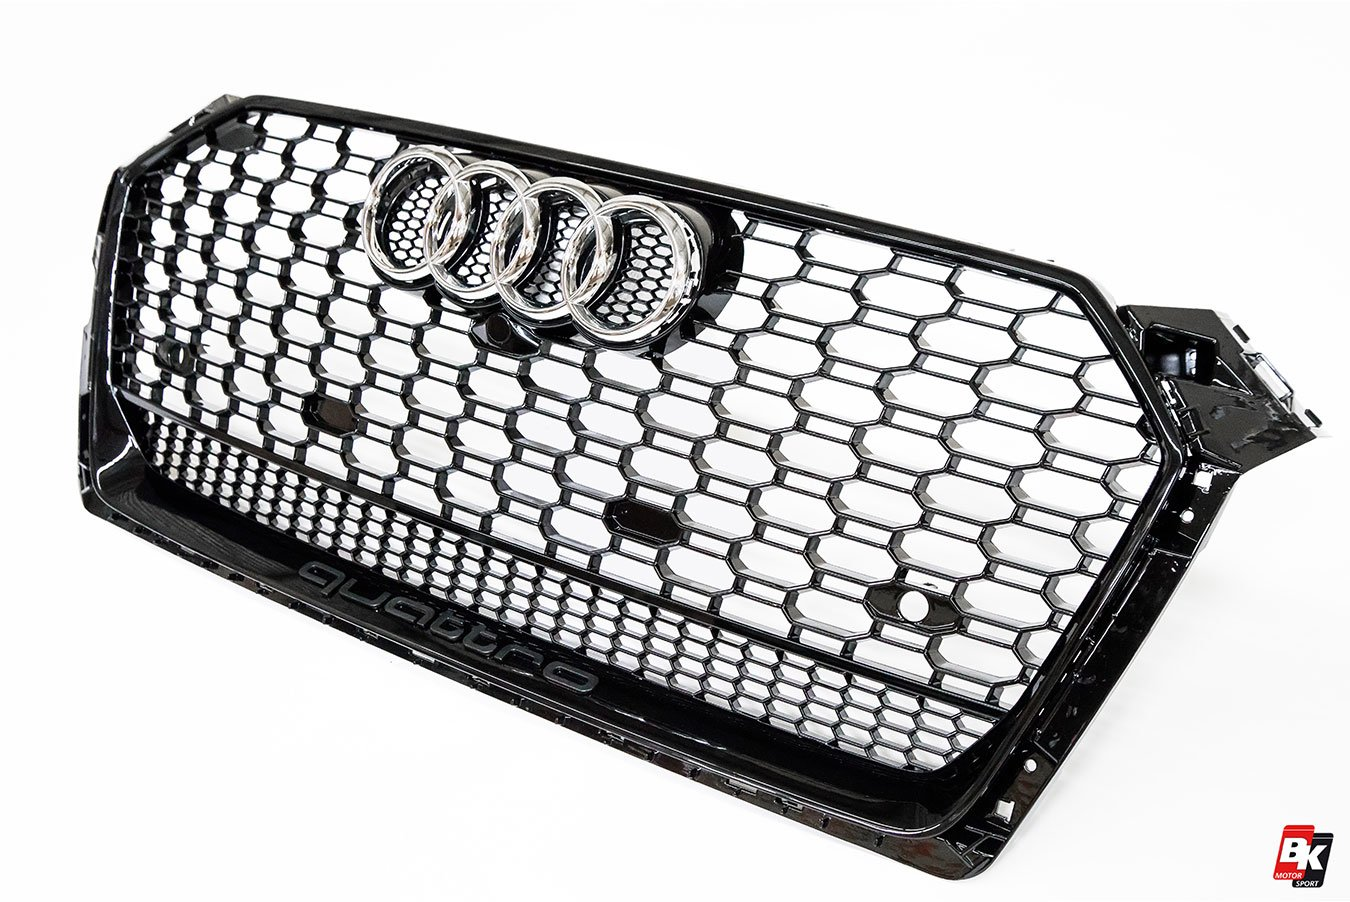 BKM Front Grille with Black Frame (RS5 Style), fits Audi